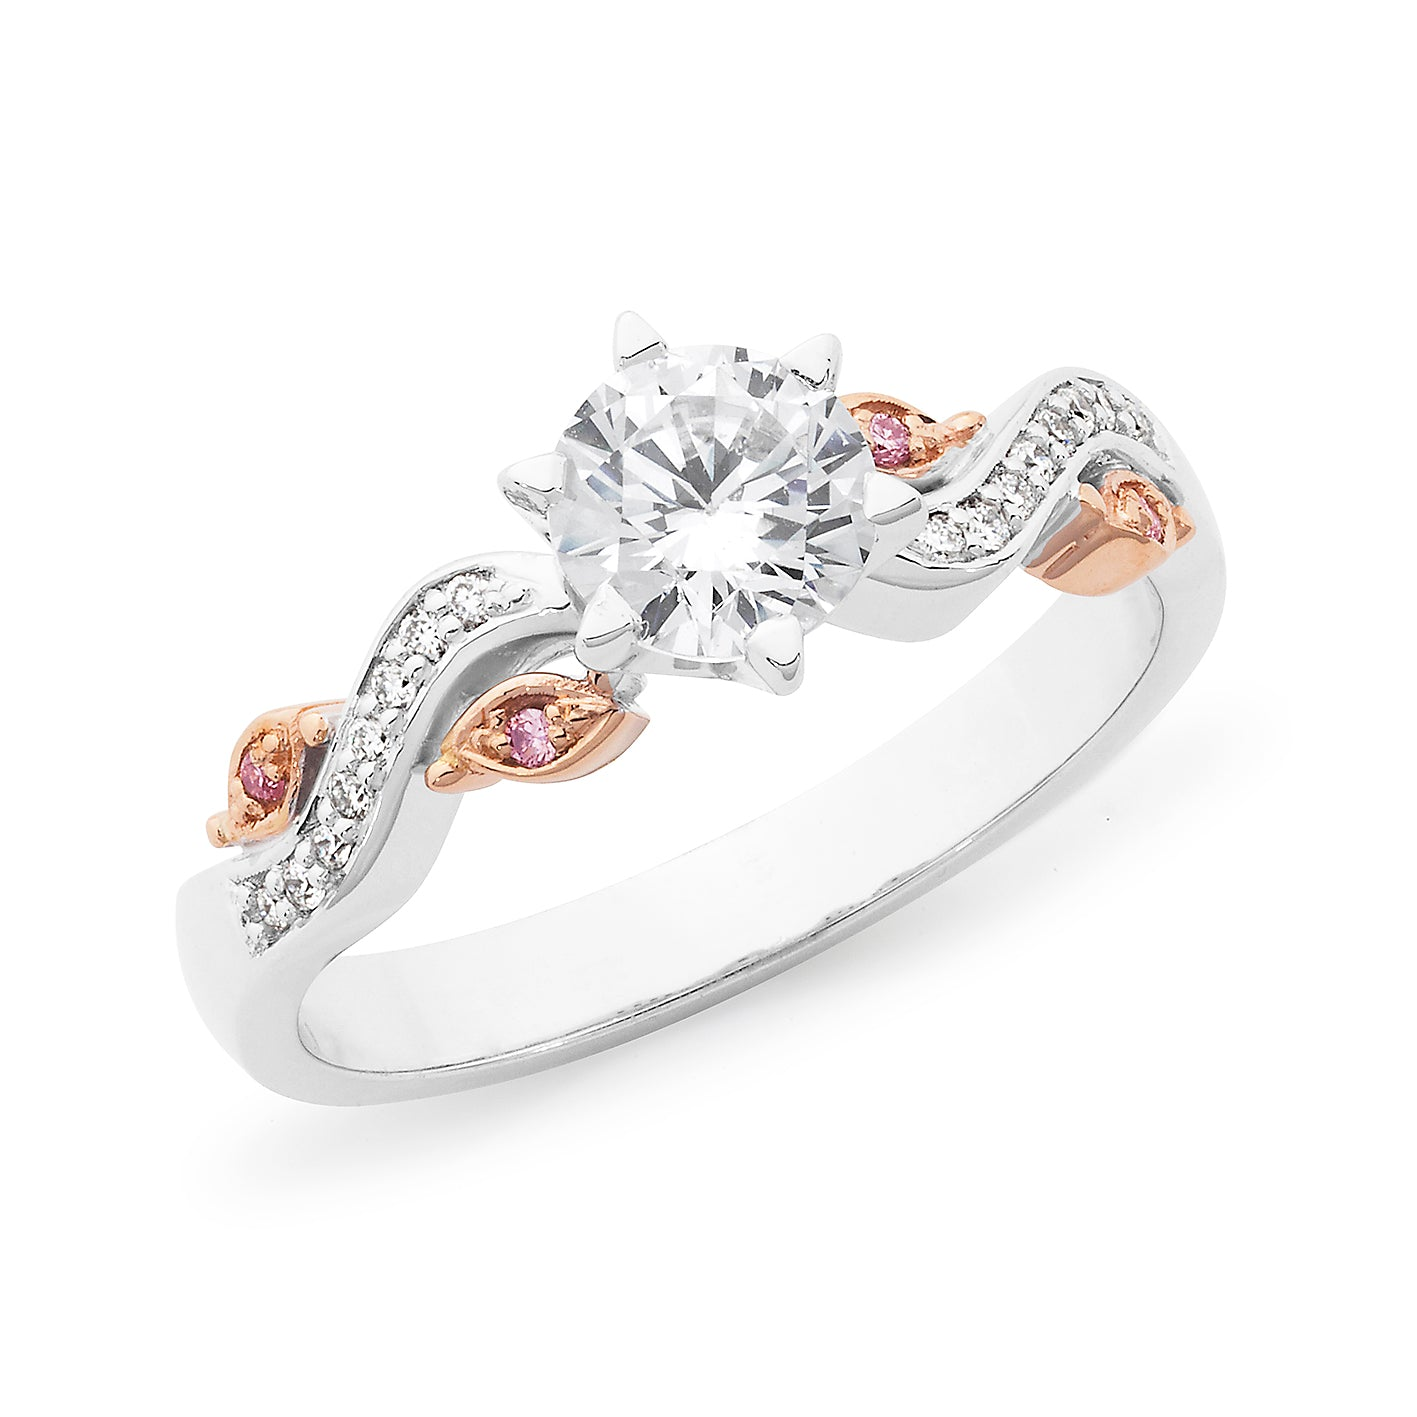 DIAMOND CLAW/BEAD SET RBC RING PINK CAVIAR IN 18CT WHITE & ROSE GOLD (0.70CT CENTRE, SI GH) TDW 0.80CT